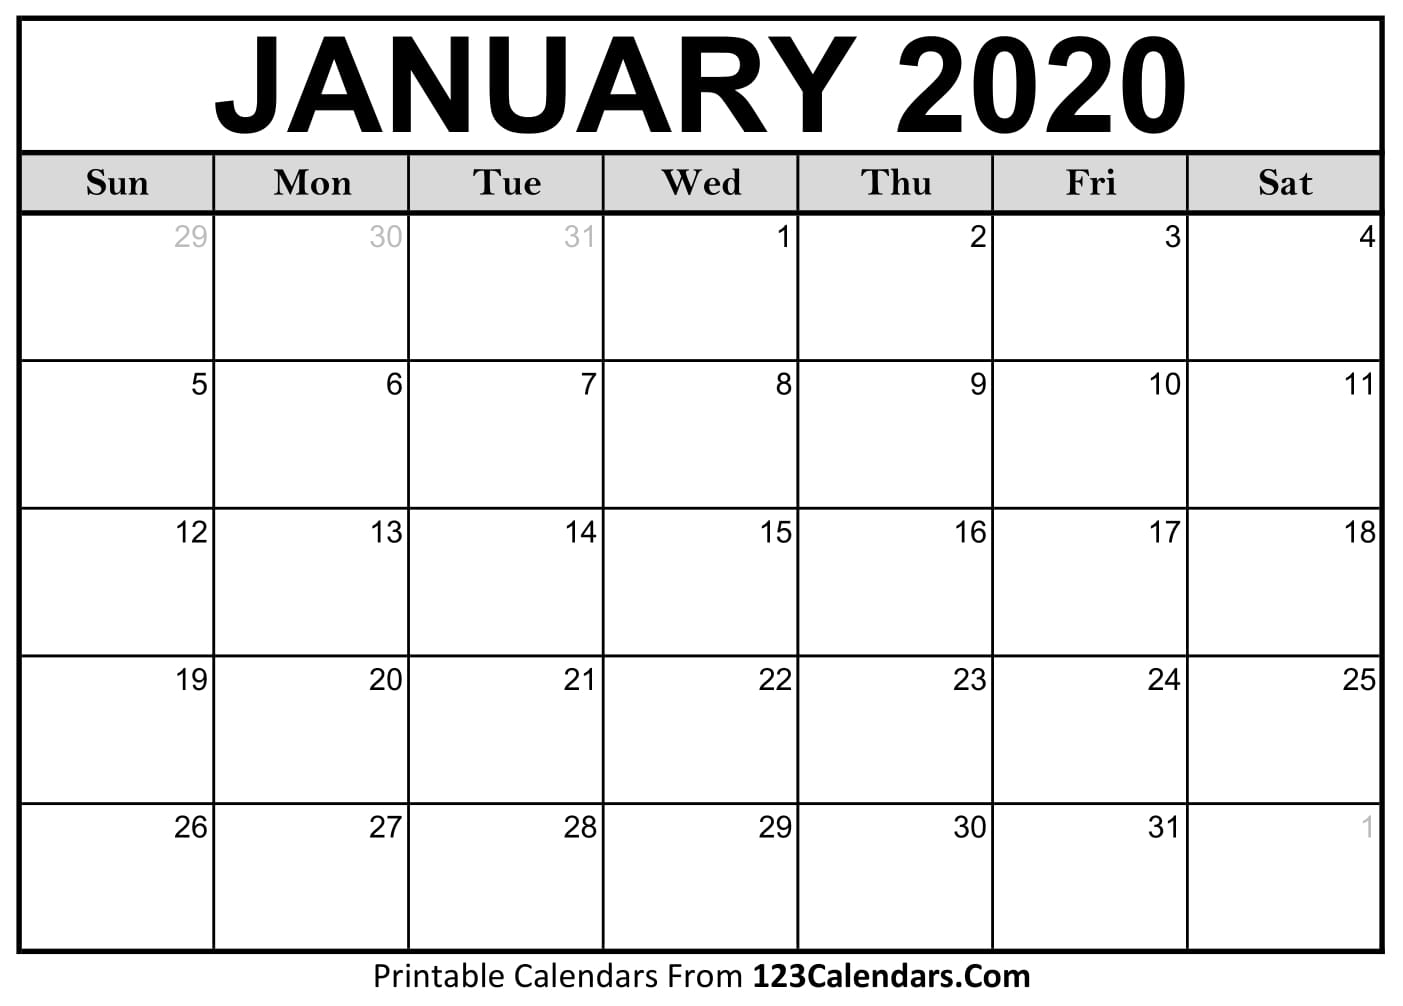 Print Free Calendars Without Downloading Calendar